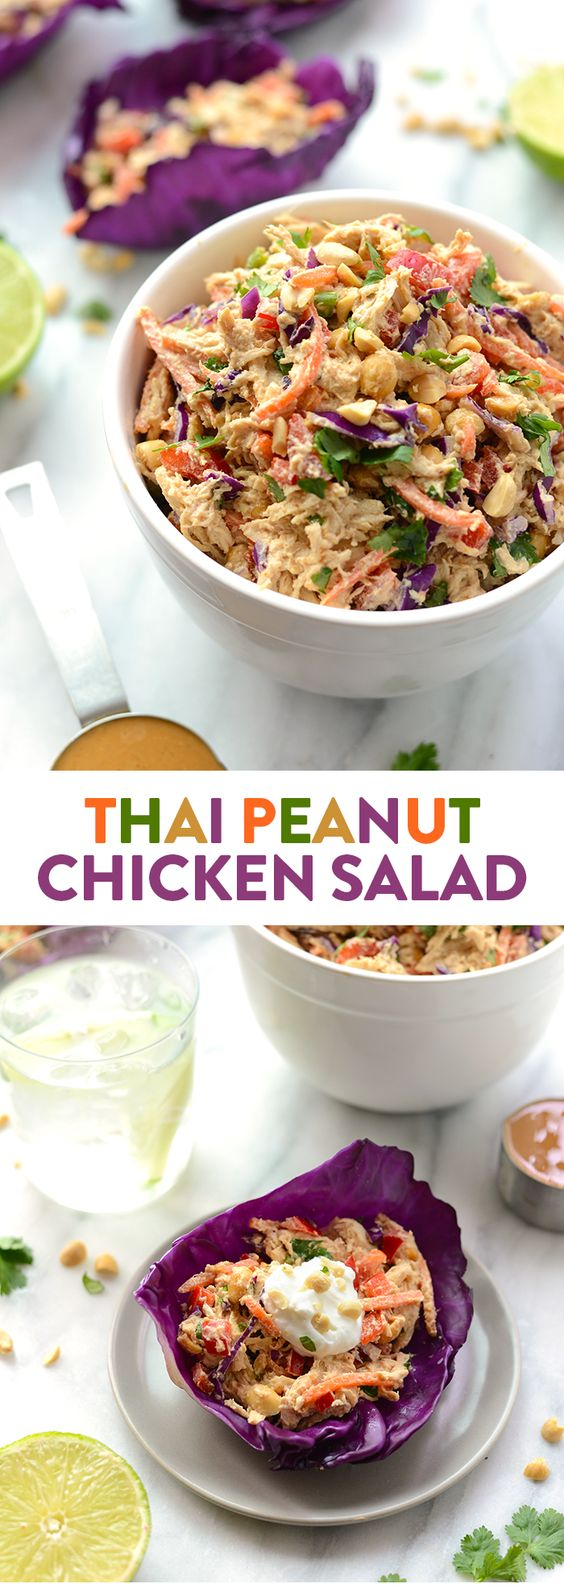 Put a healthy, creative twist on classic chicken salad by using a Greek yogurt and peanut butter base with tons of crunchy veggies and peanuts. This Thai Peanut Chicken Salad is a great meal-prep recipe!